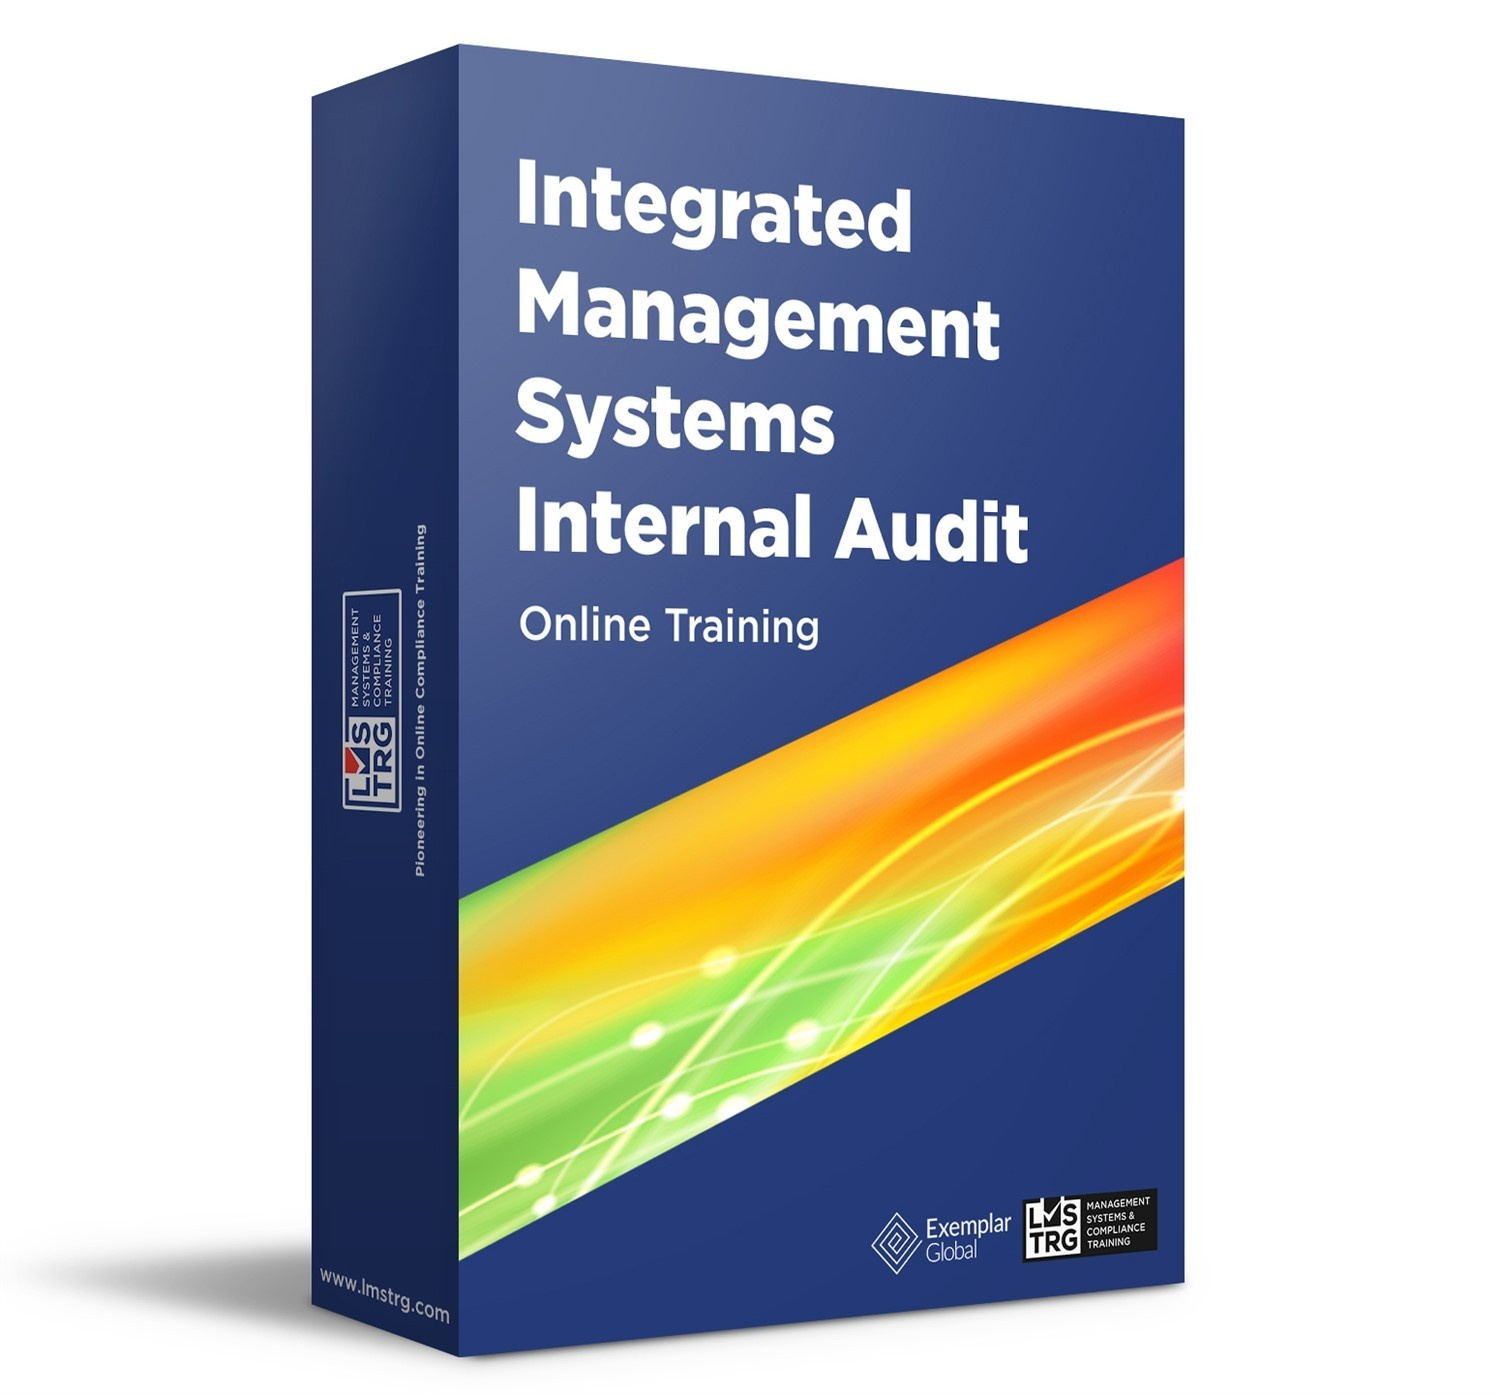 Integrated Management Systems (IMS) Internal Audit Training Online